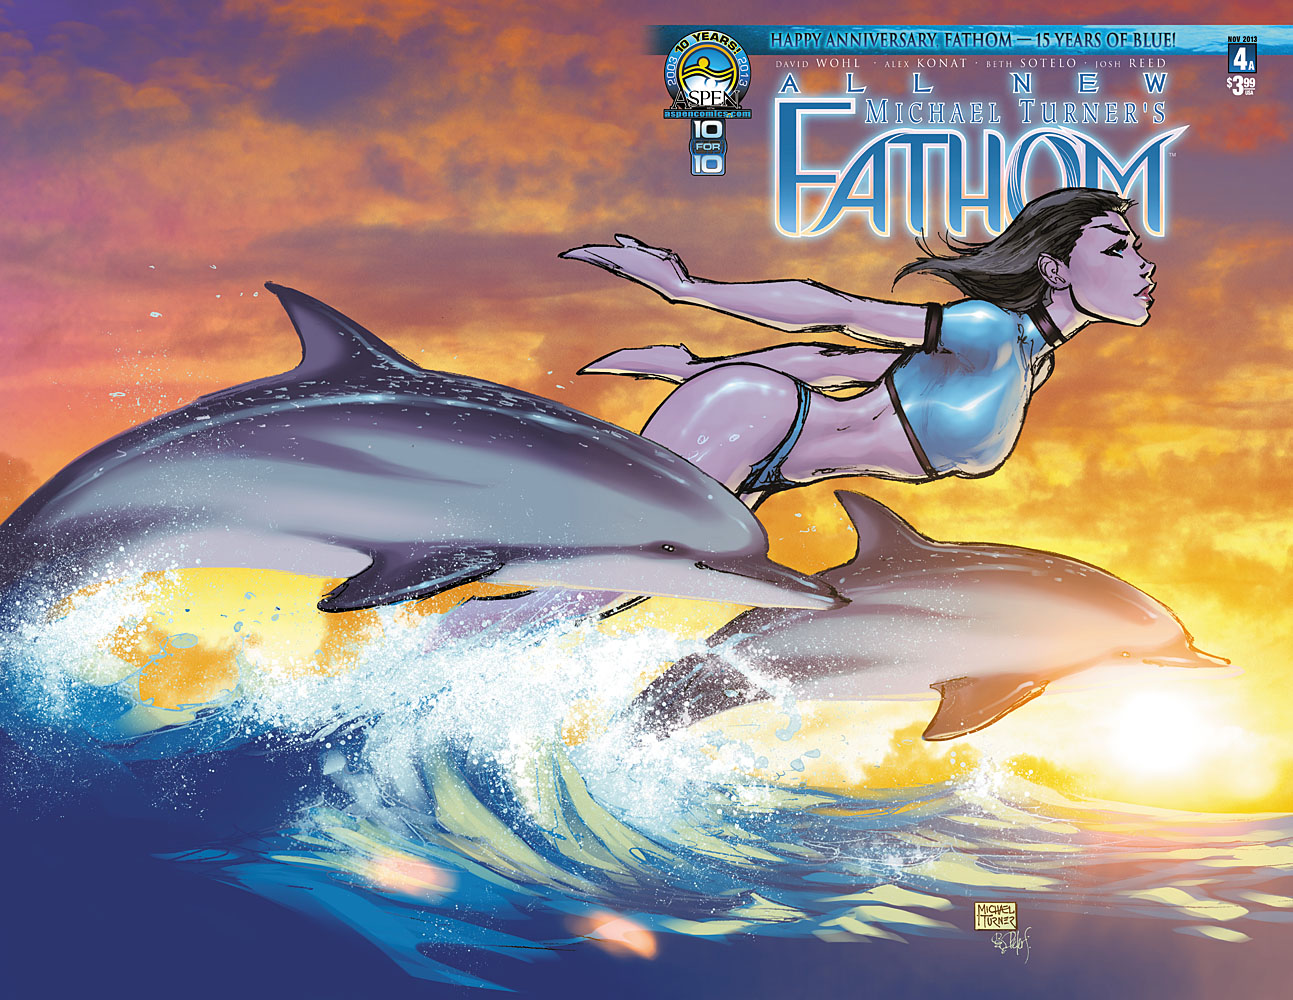 Preview: All New Michael Turner's Fathom #4